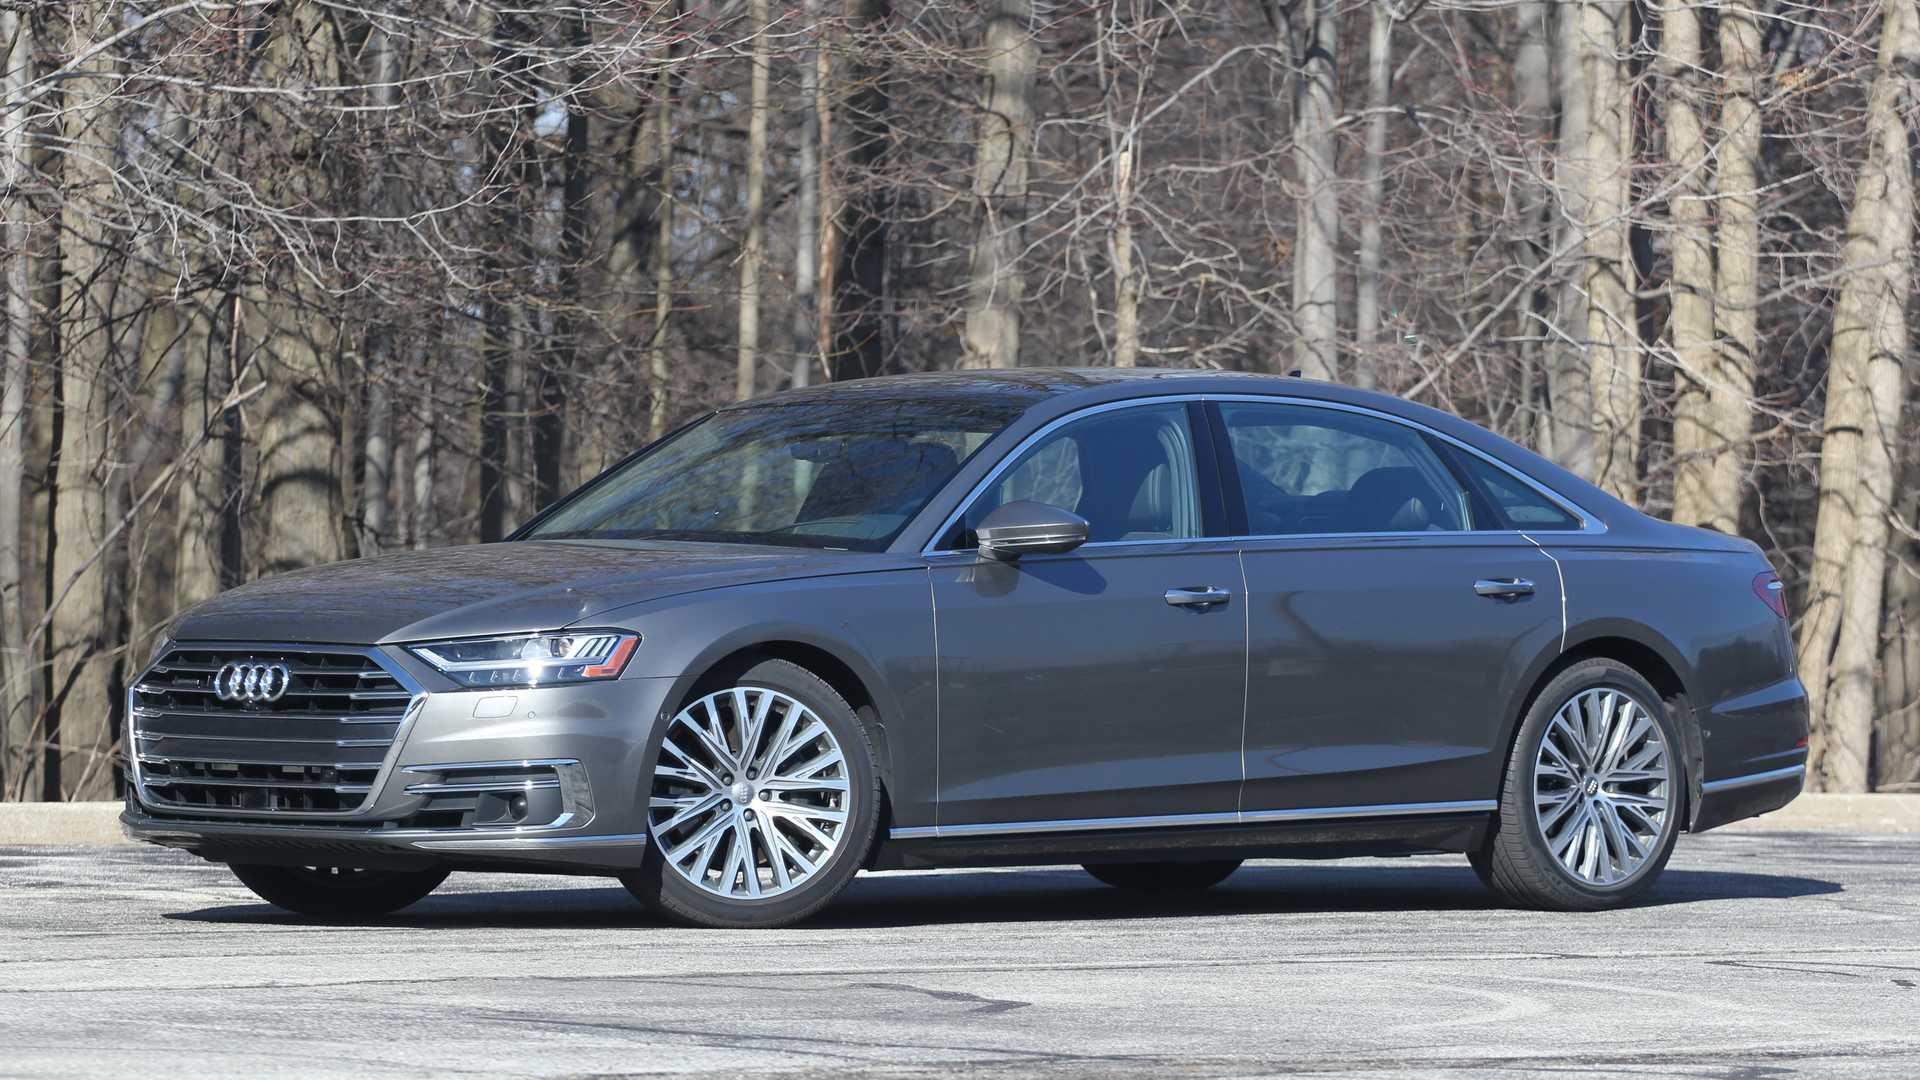 2019 Audi A8 Review Try Harder